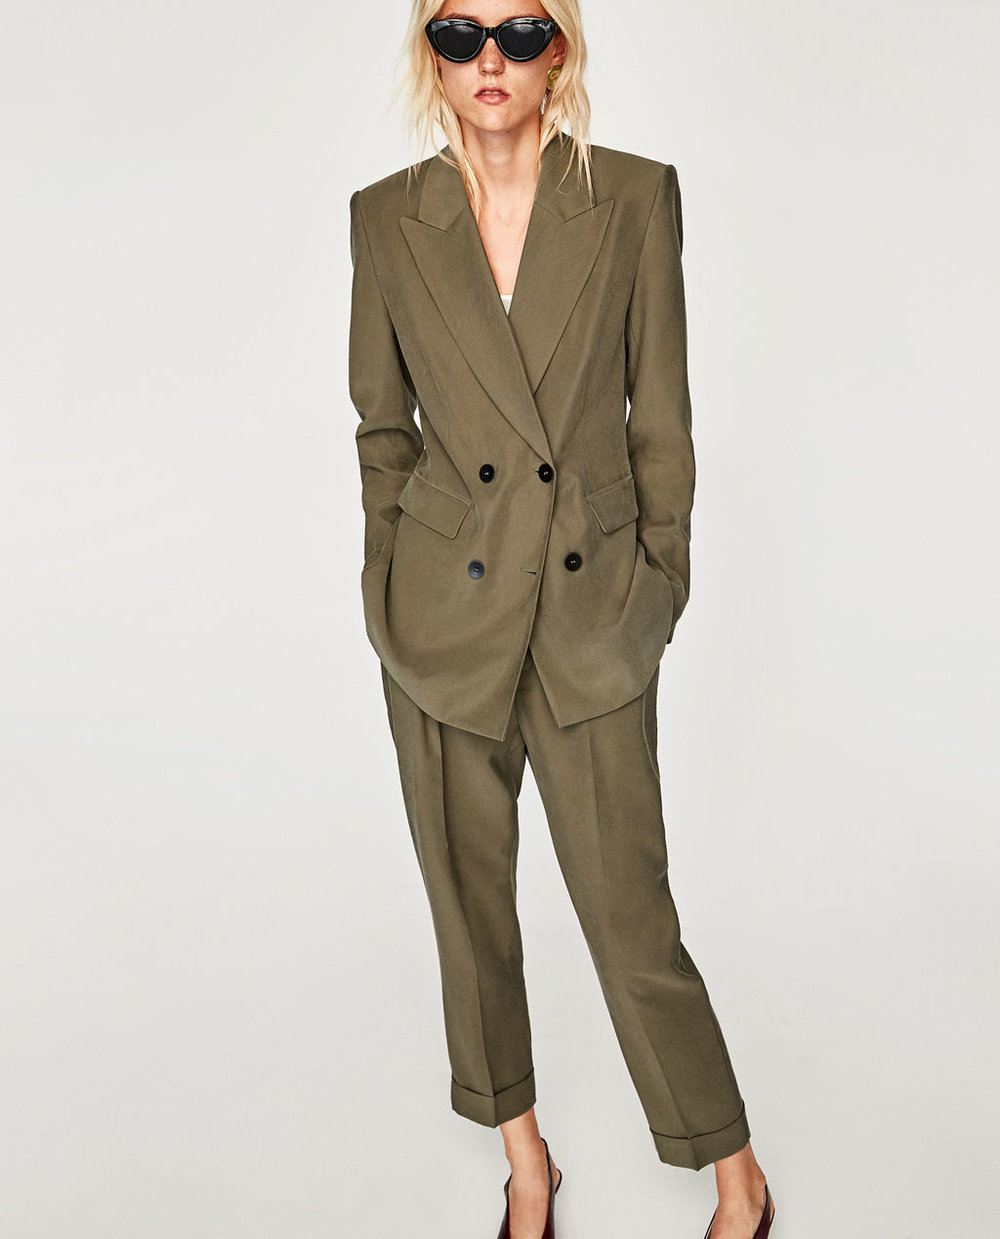 blazer $70  and  trousers $40